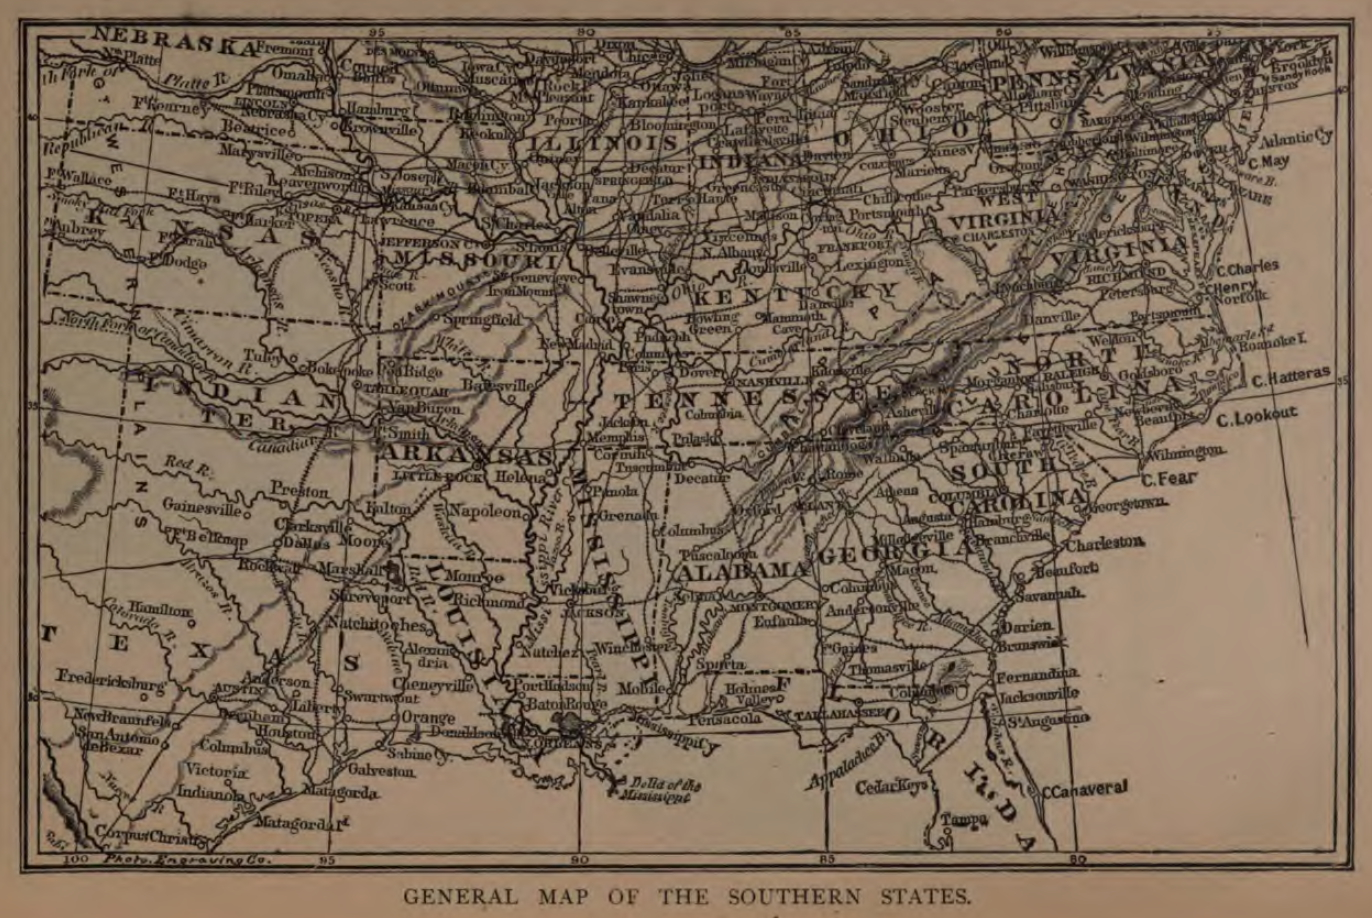 General Map of the Southern States